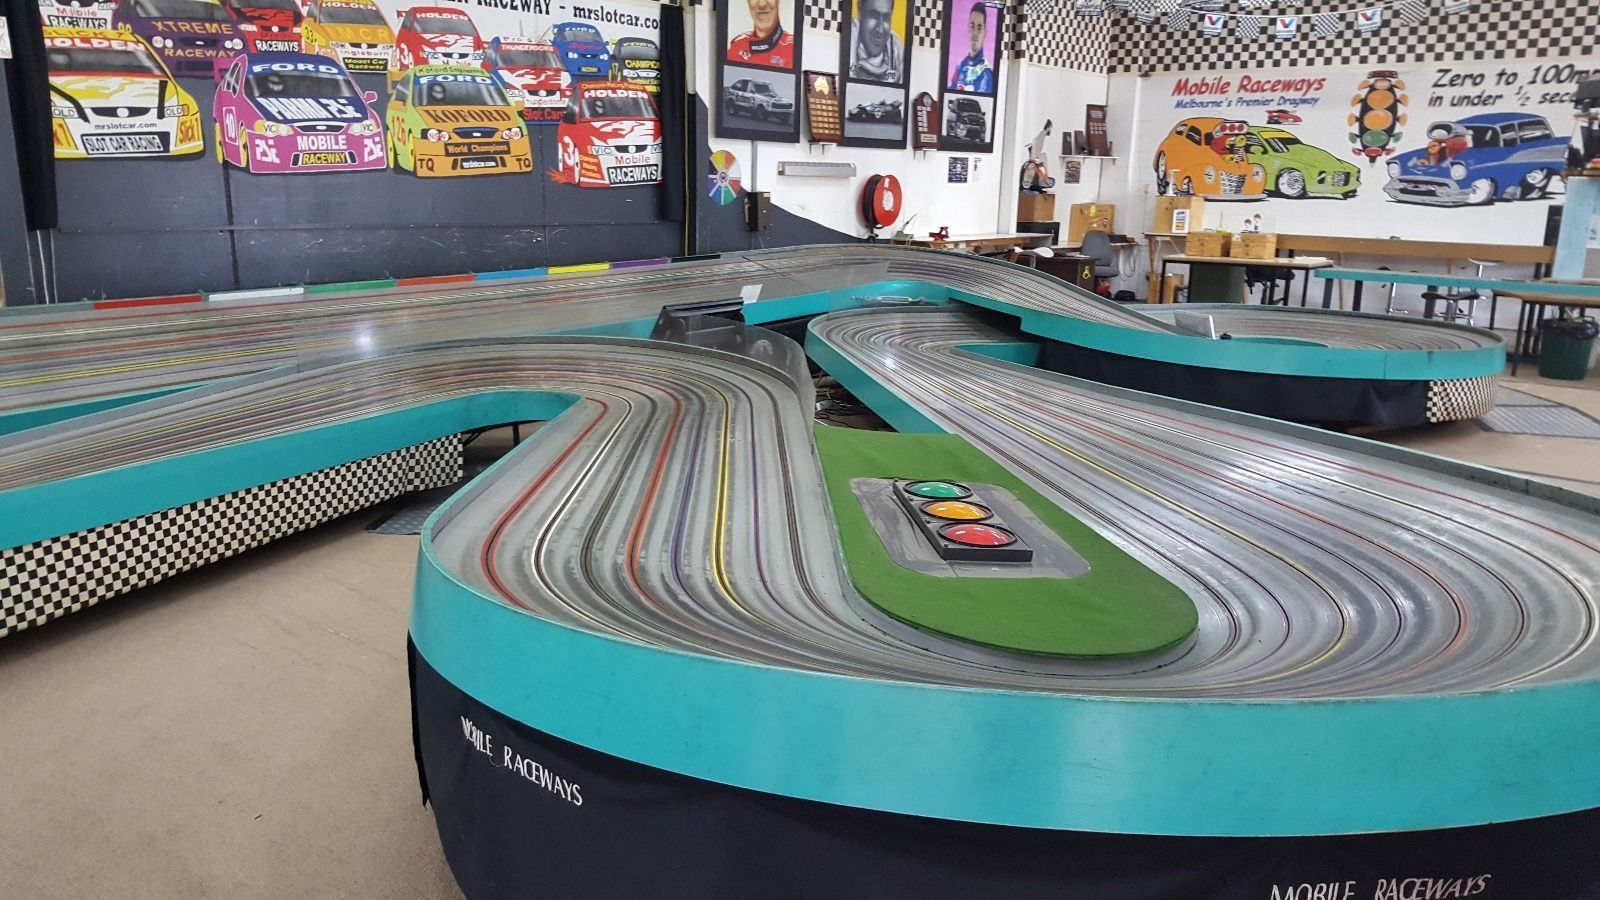 Apr 27, - This design was originated in the 's by American Raceways, the premier track manufacturer of that era.